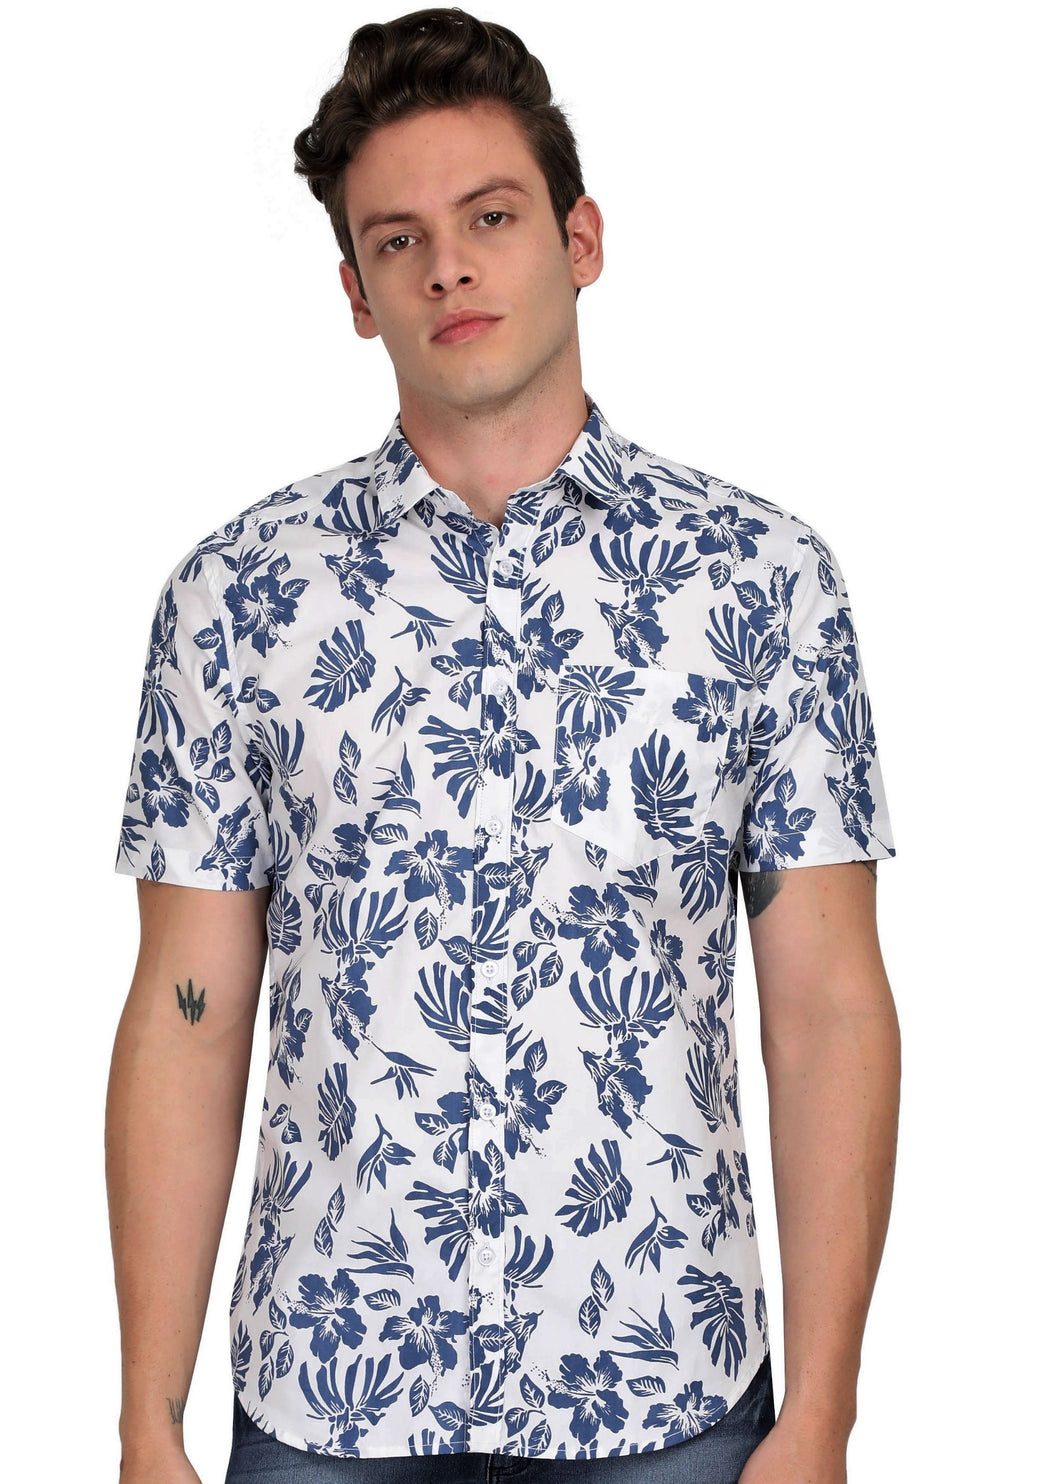 Tusok-miami-iceVacation-Printed Shirtimage-Manish Blue (1)